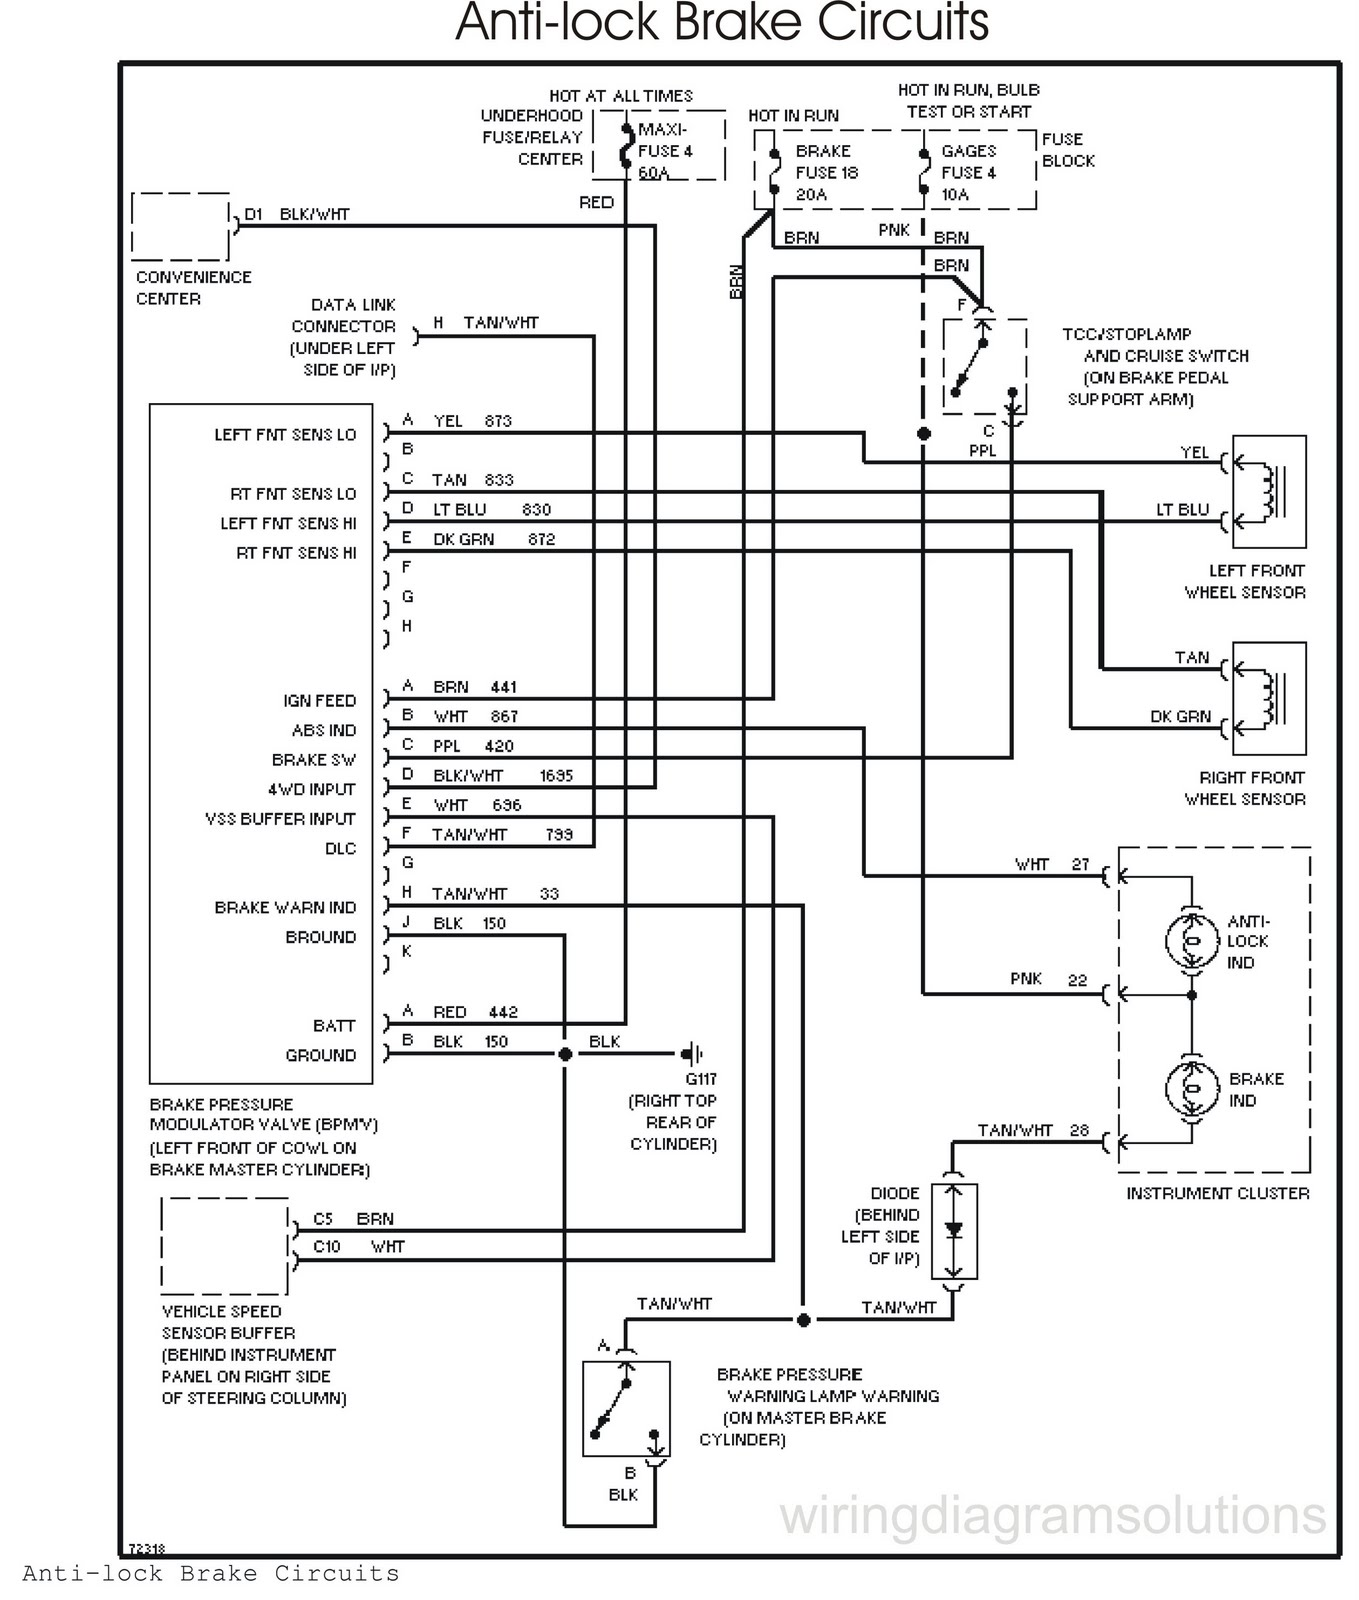 The Chevrolet Tahoe Wiring Schematic Anti Lock Brake Circuits